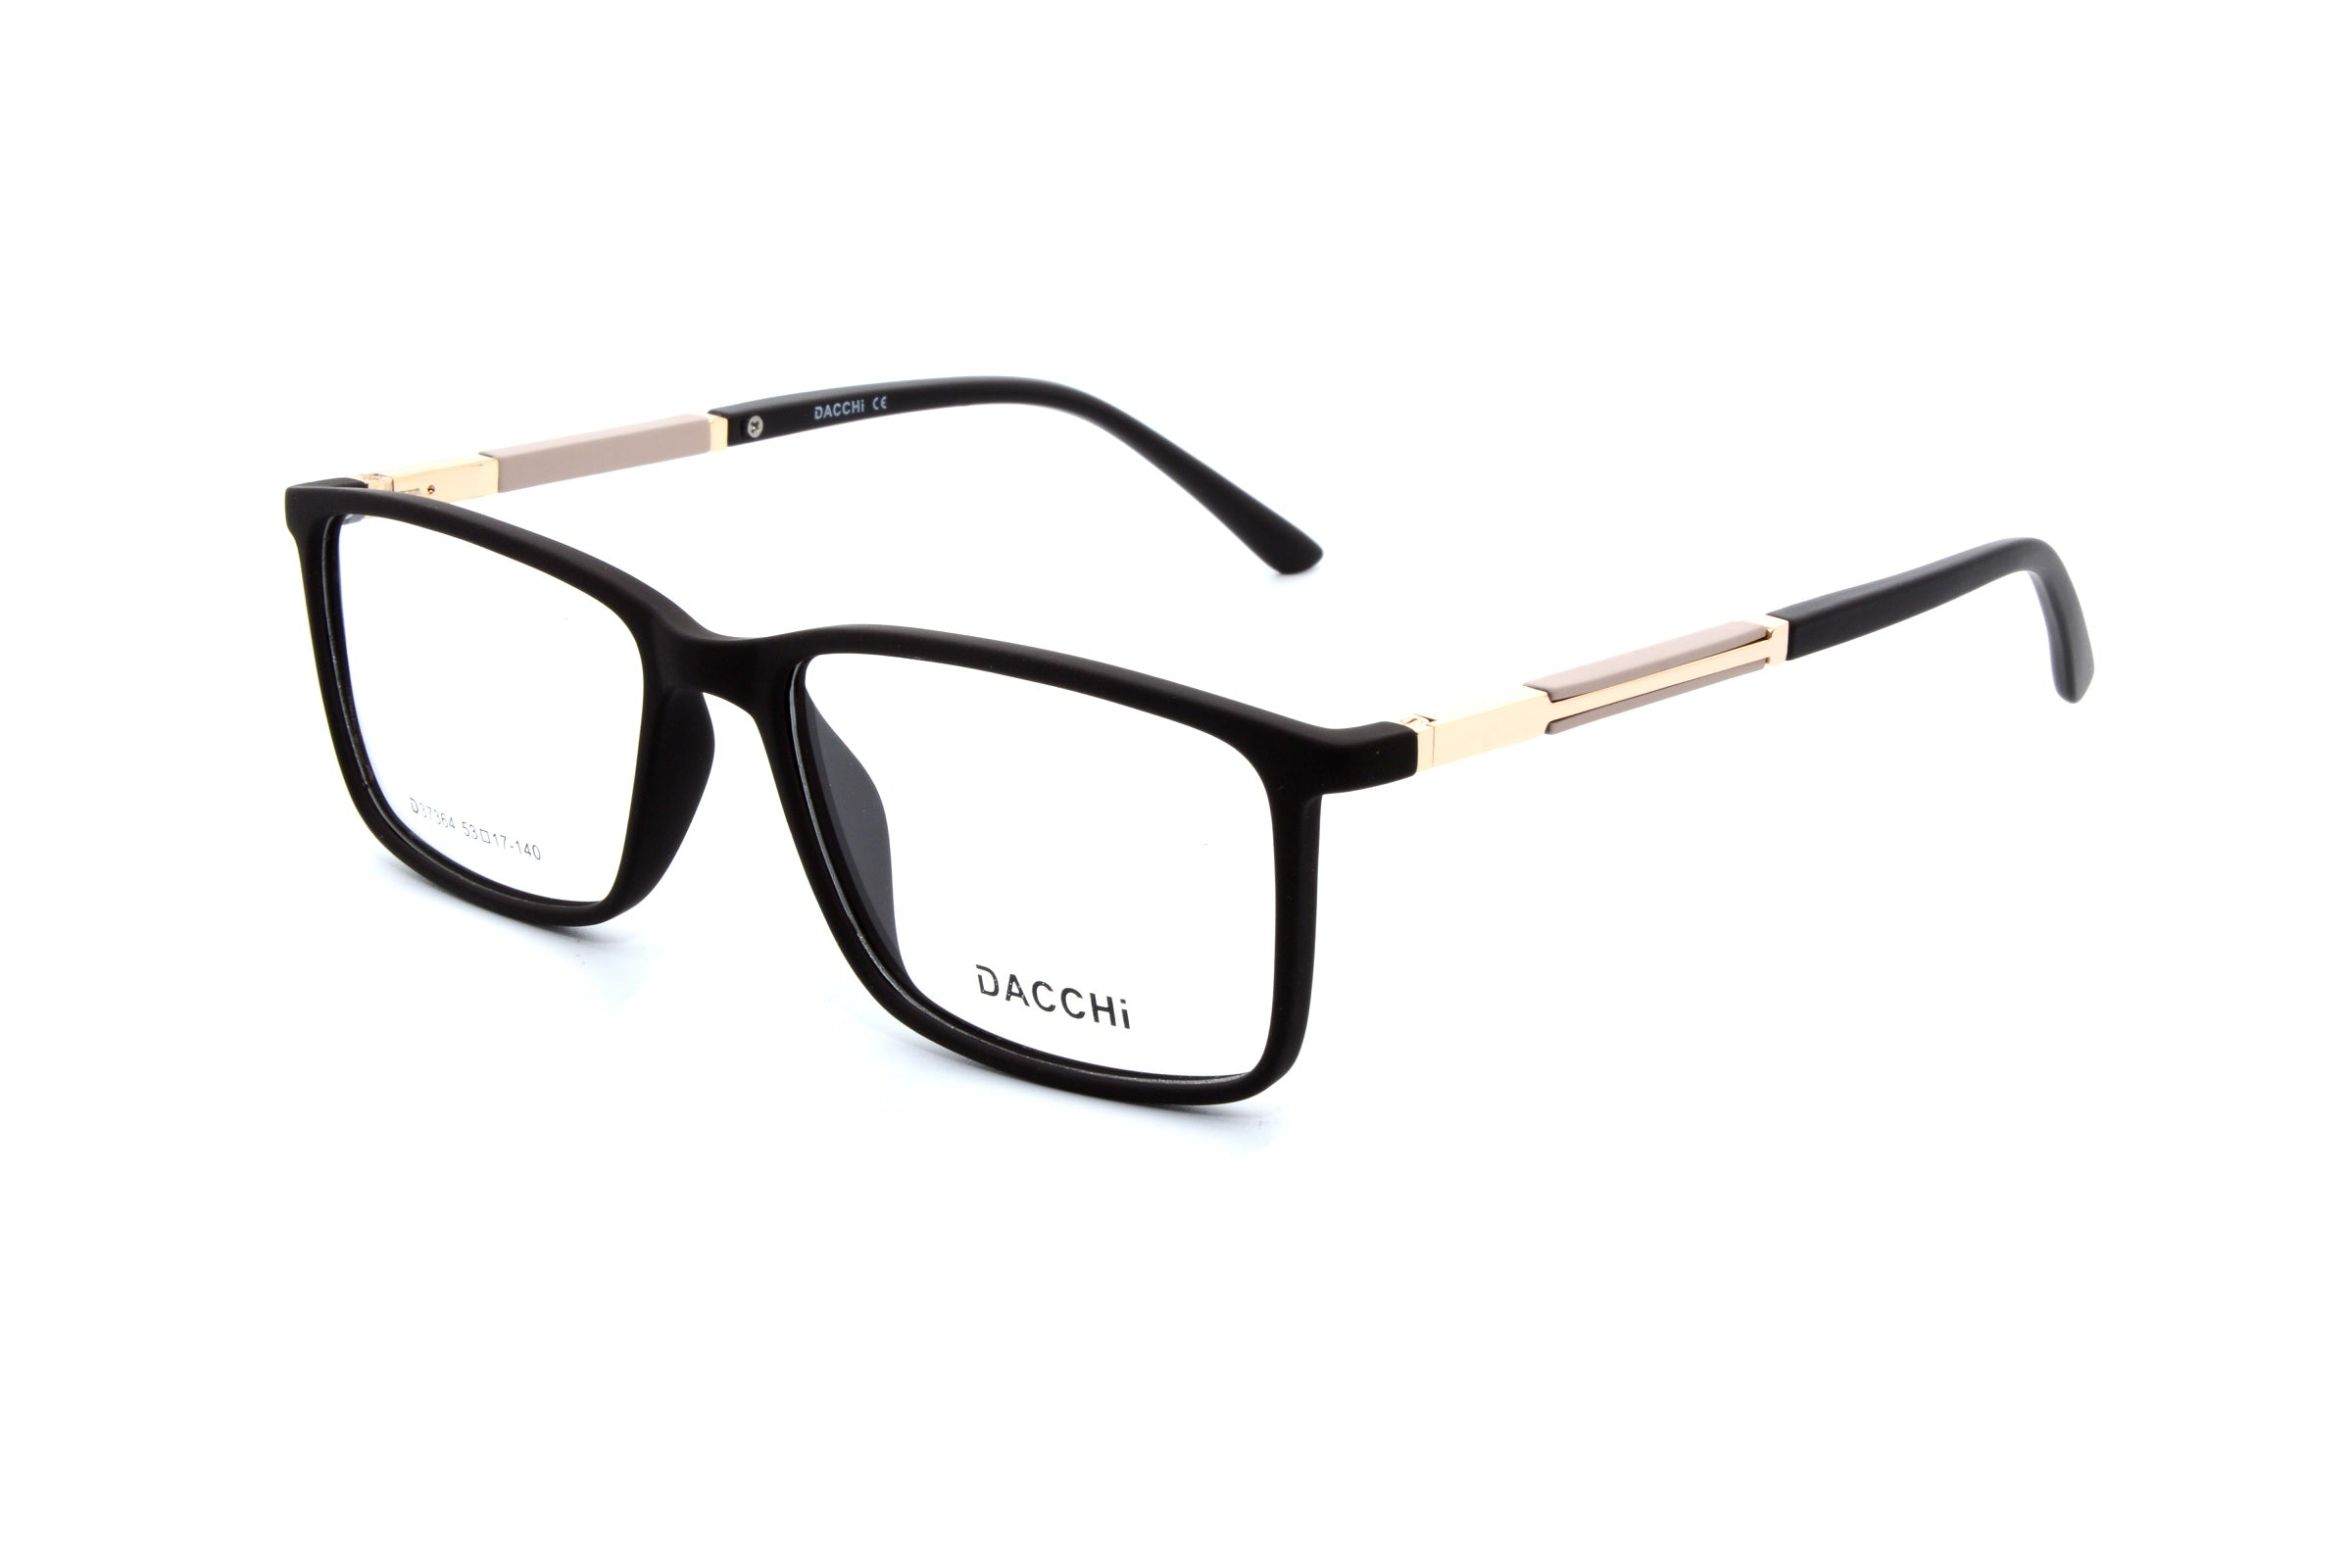 Dacchi eyewear 37364, C3 - Optics Trading